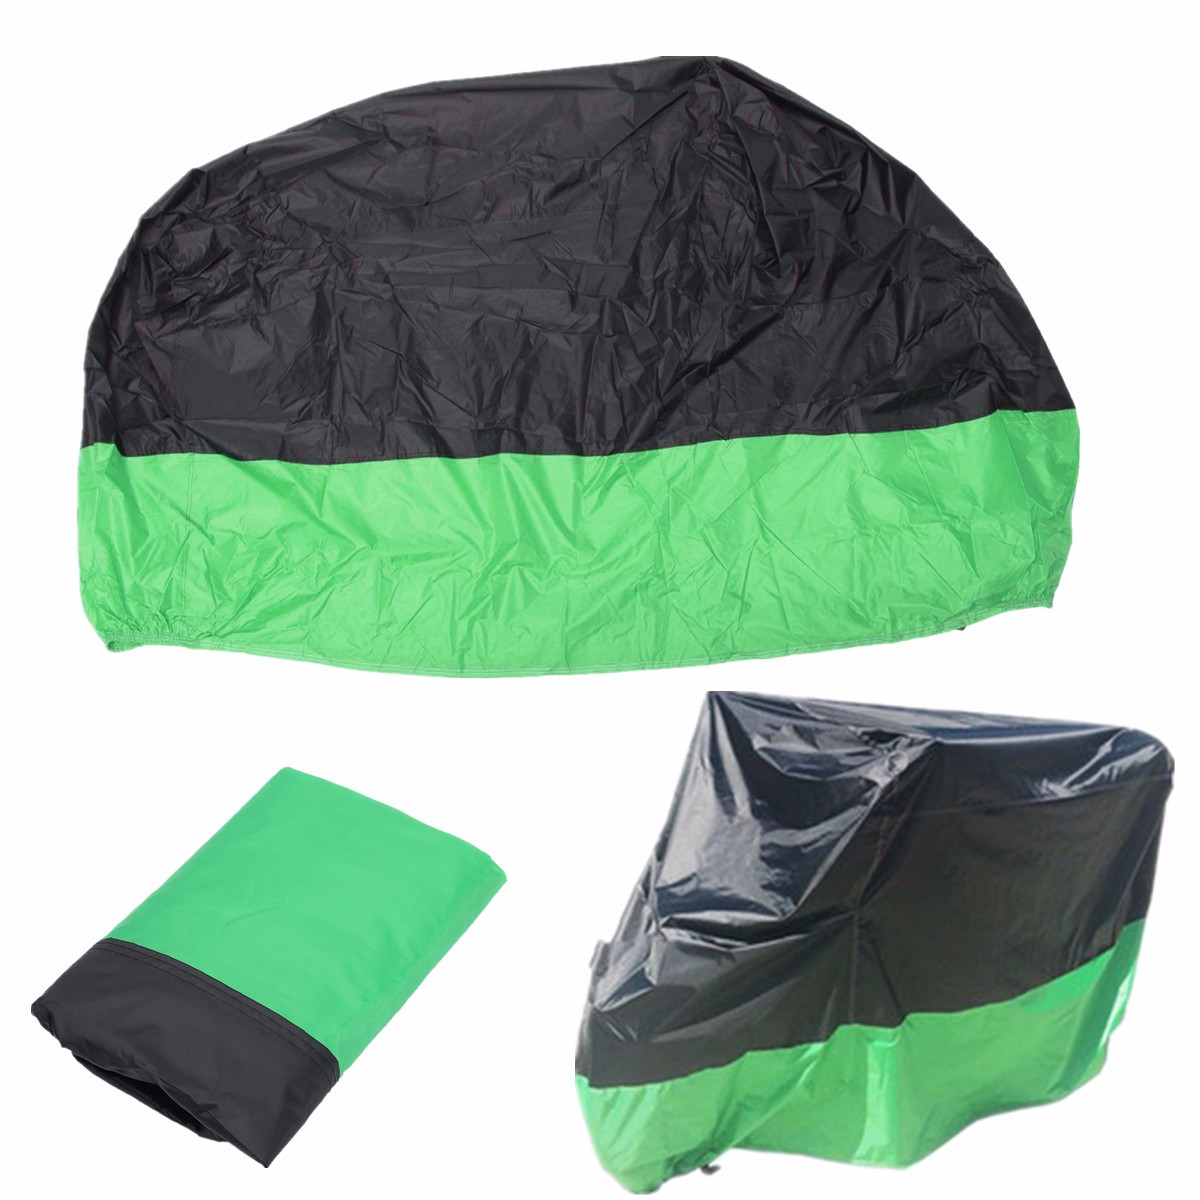 Book Cover Black Xl ~ Motorcycle waterproof cover scooter rain dust green